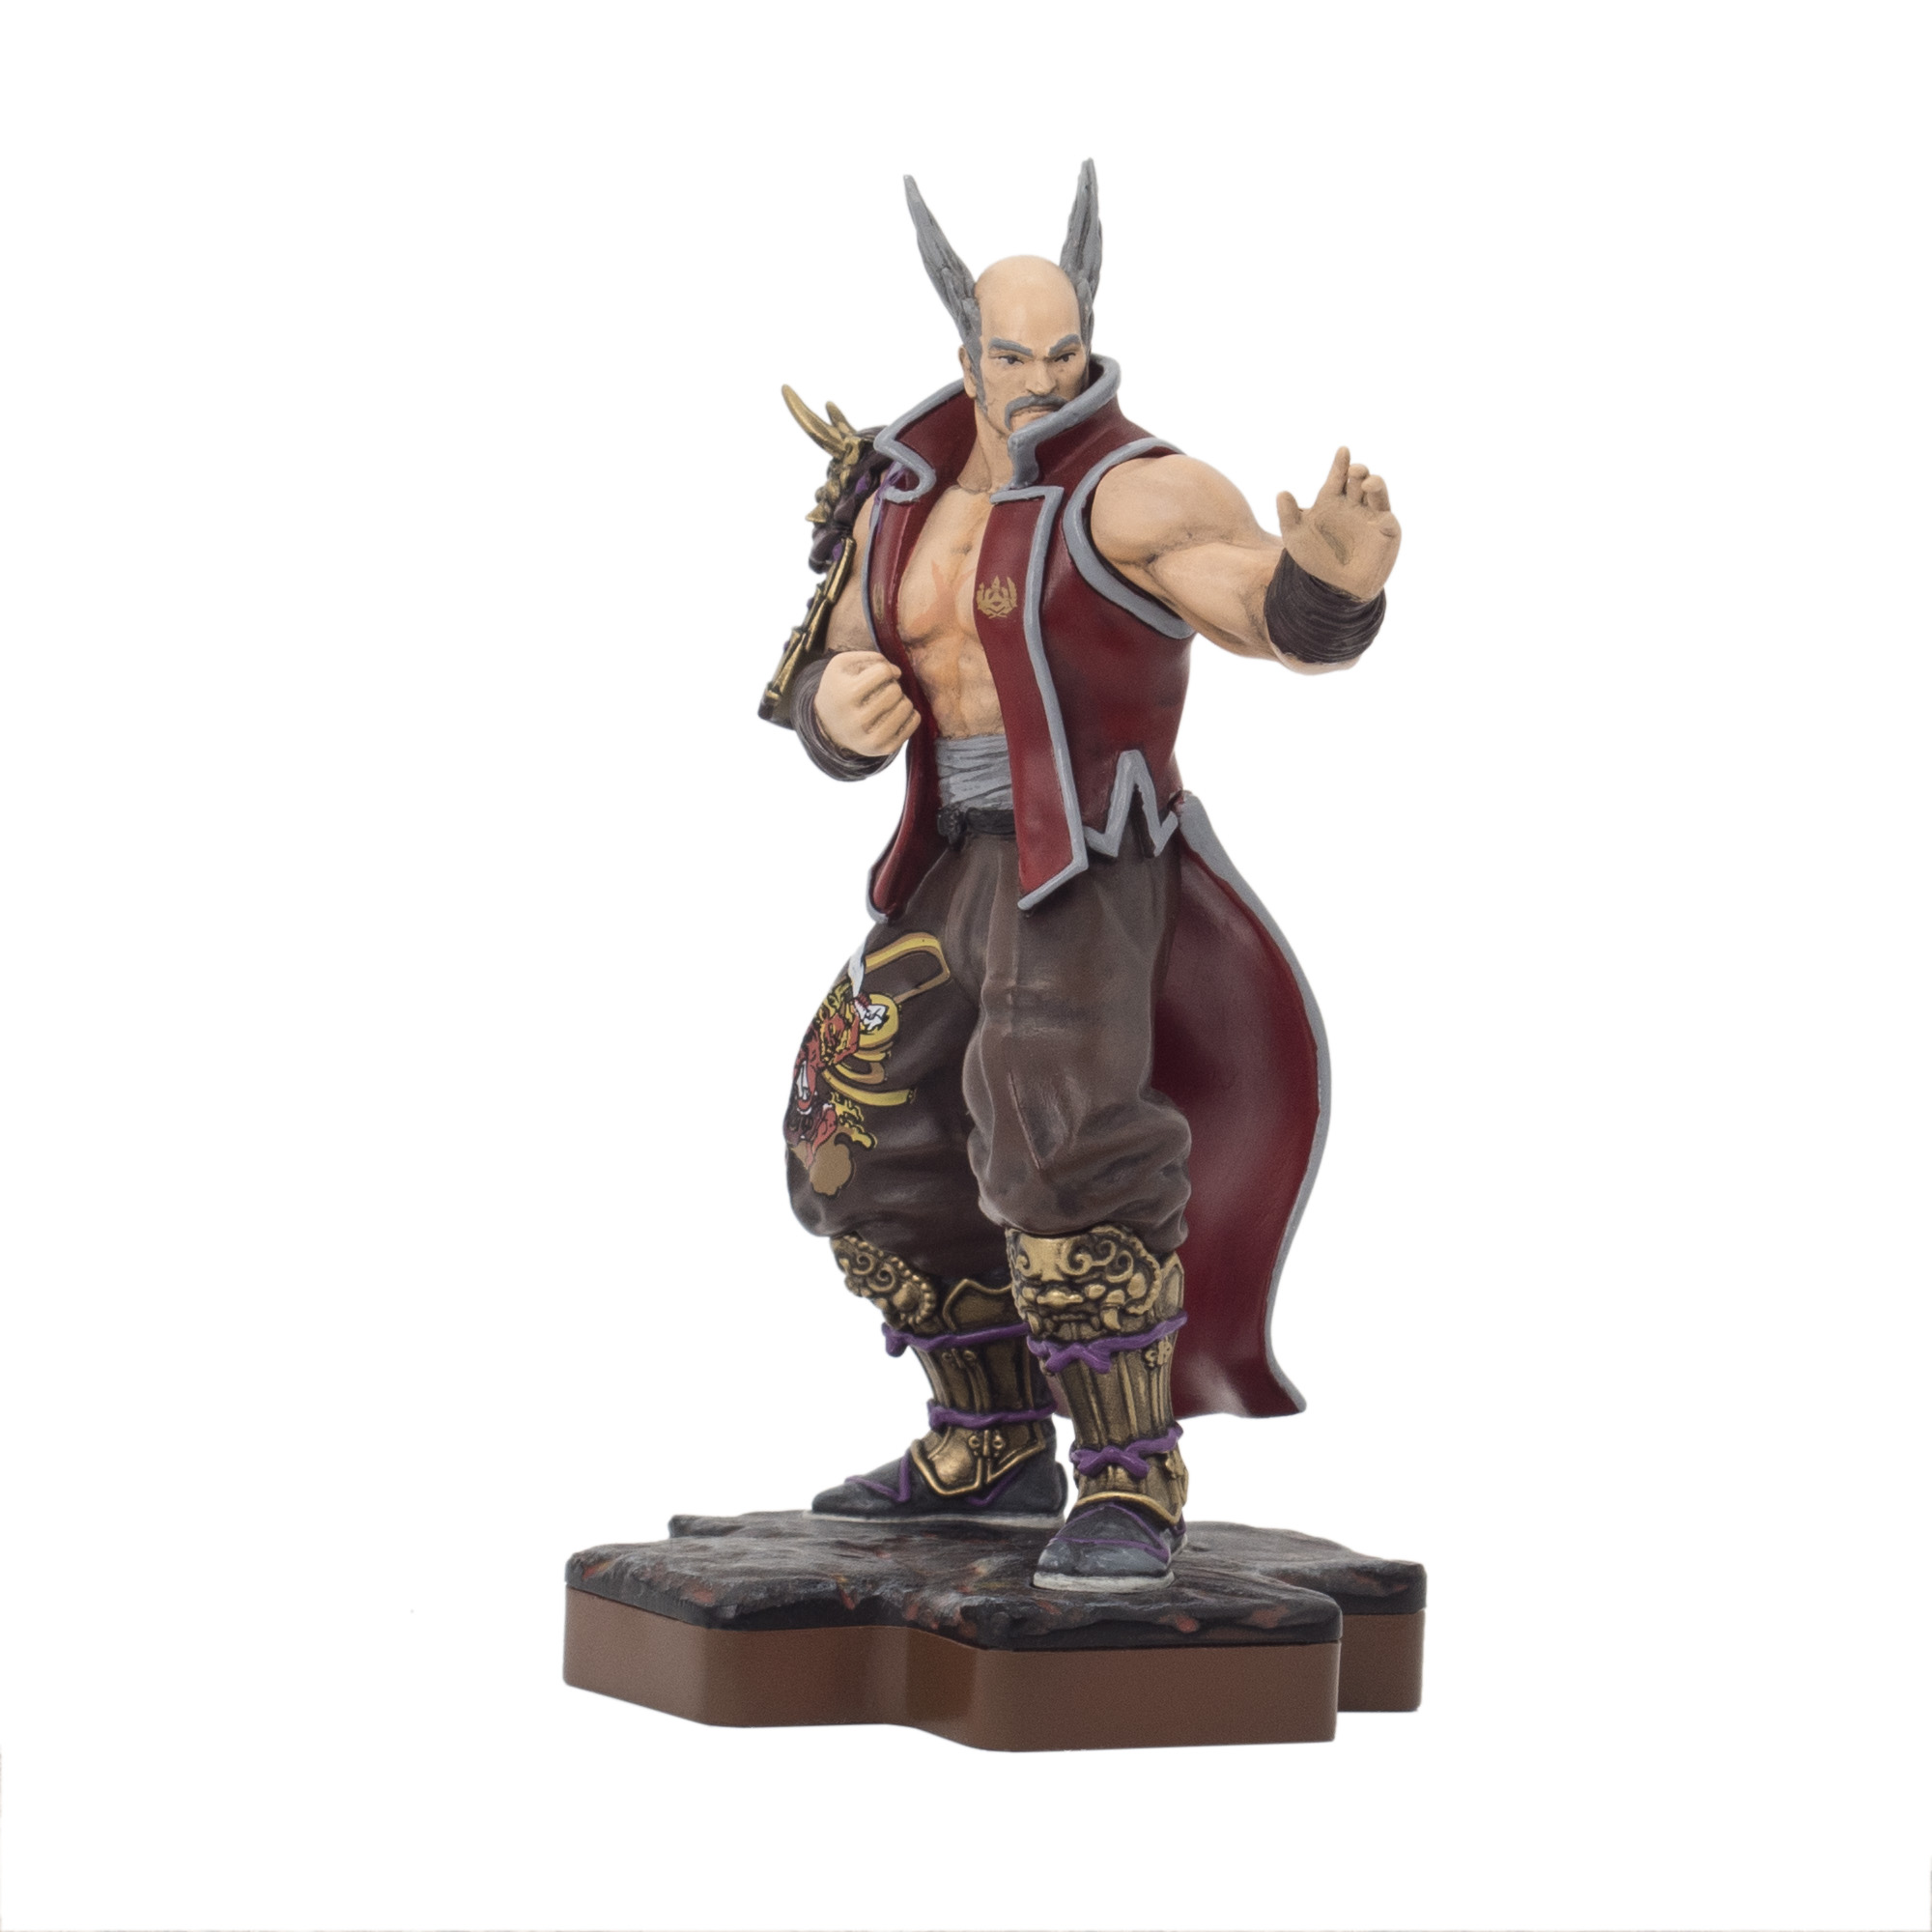 PlayStation announces Totaku: a new line of collectable figurines